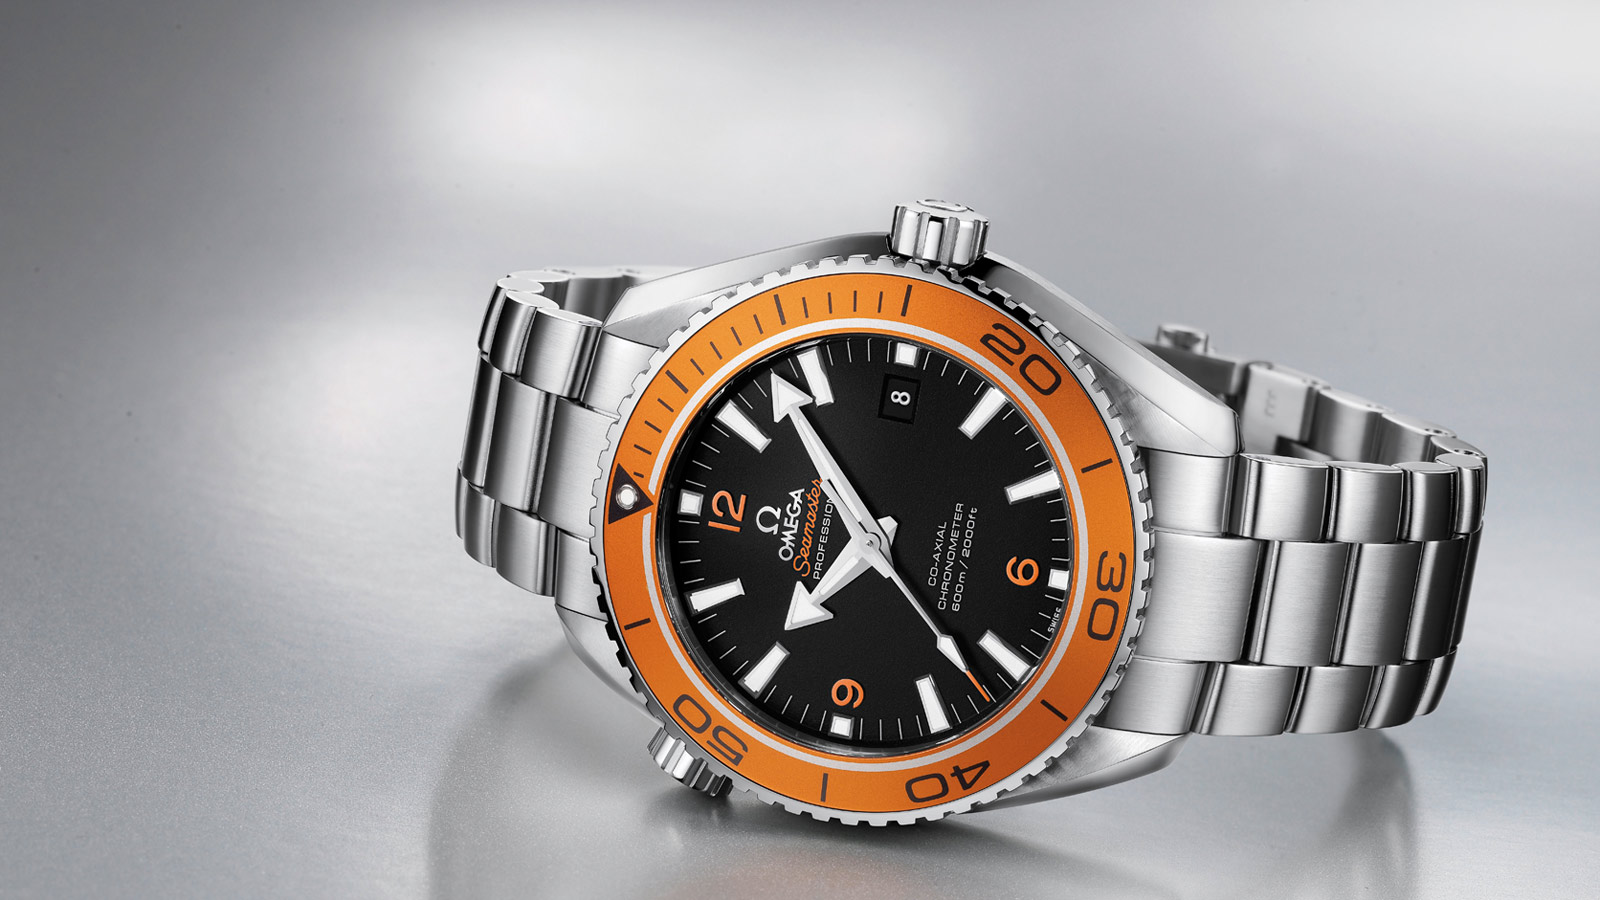 Seamaster Planet Ocean 600M Planet Ocean 600M Omega Co‑Axial 45.5 mm - 232.30.46.21.01.002 - View 1